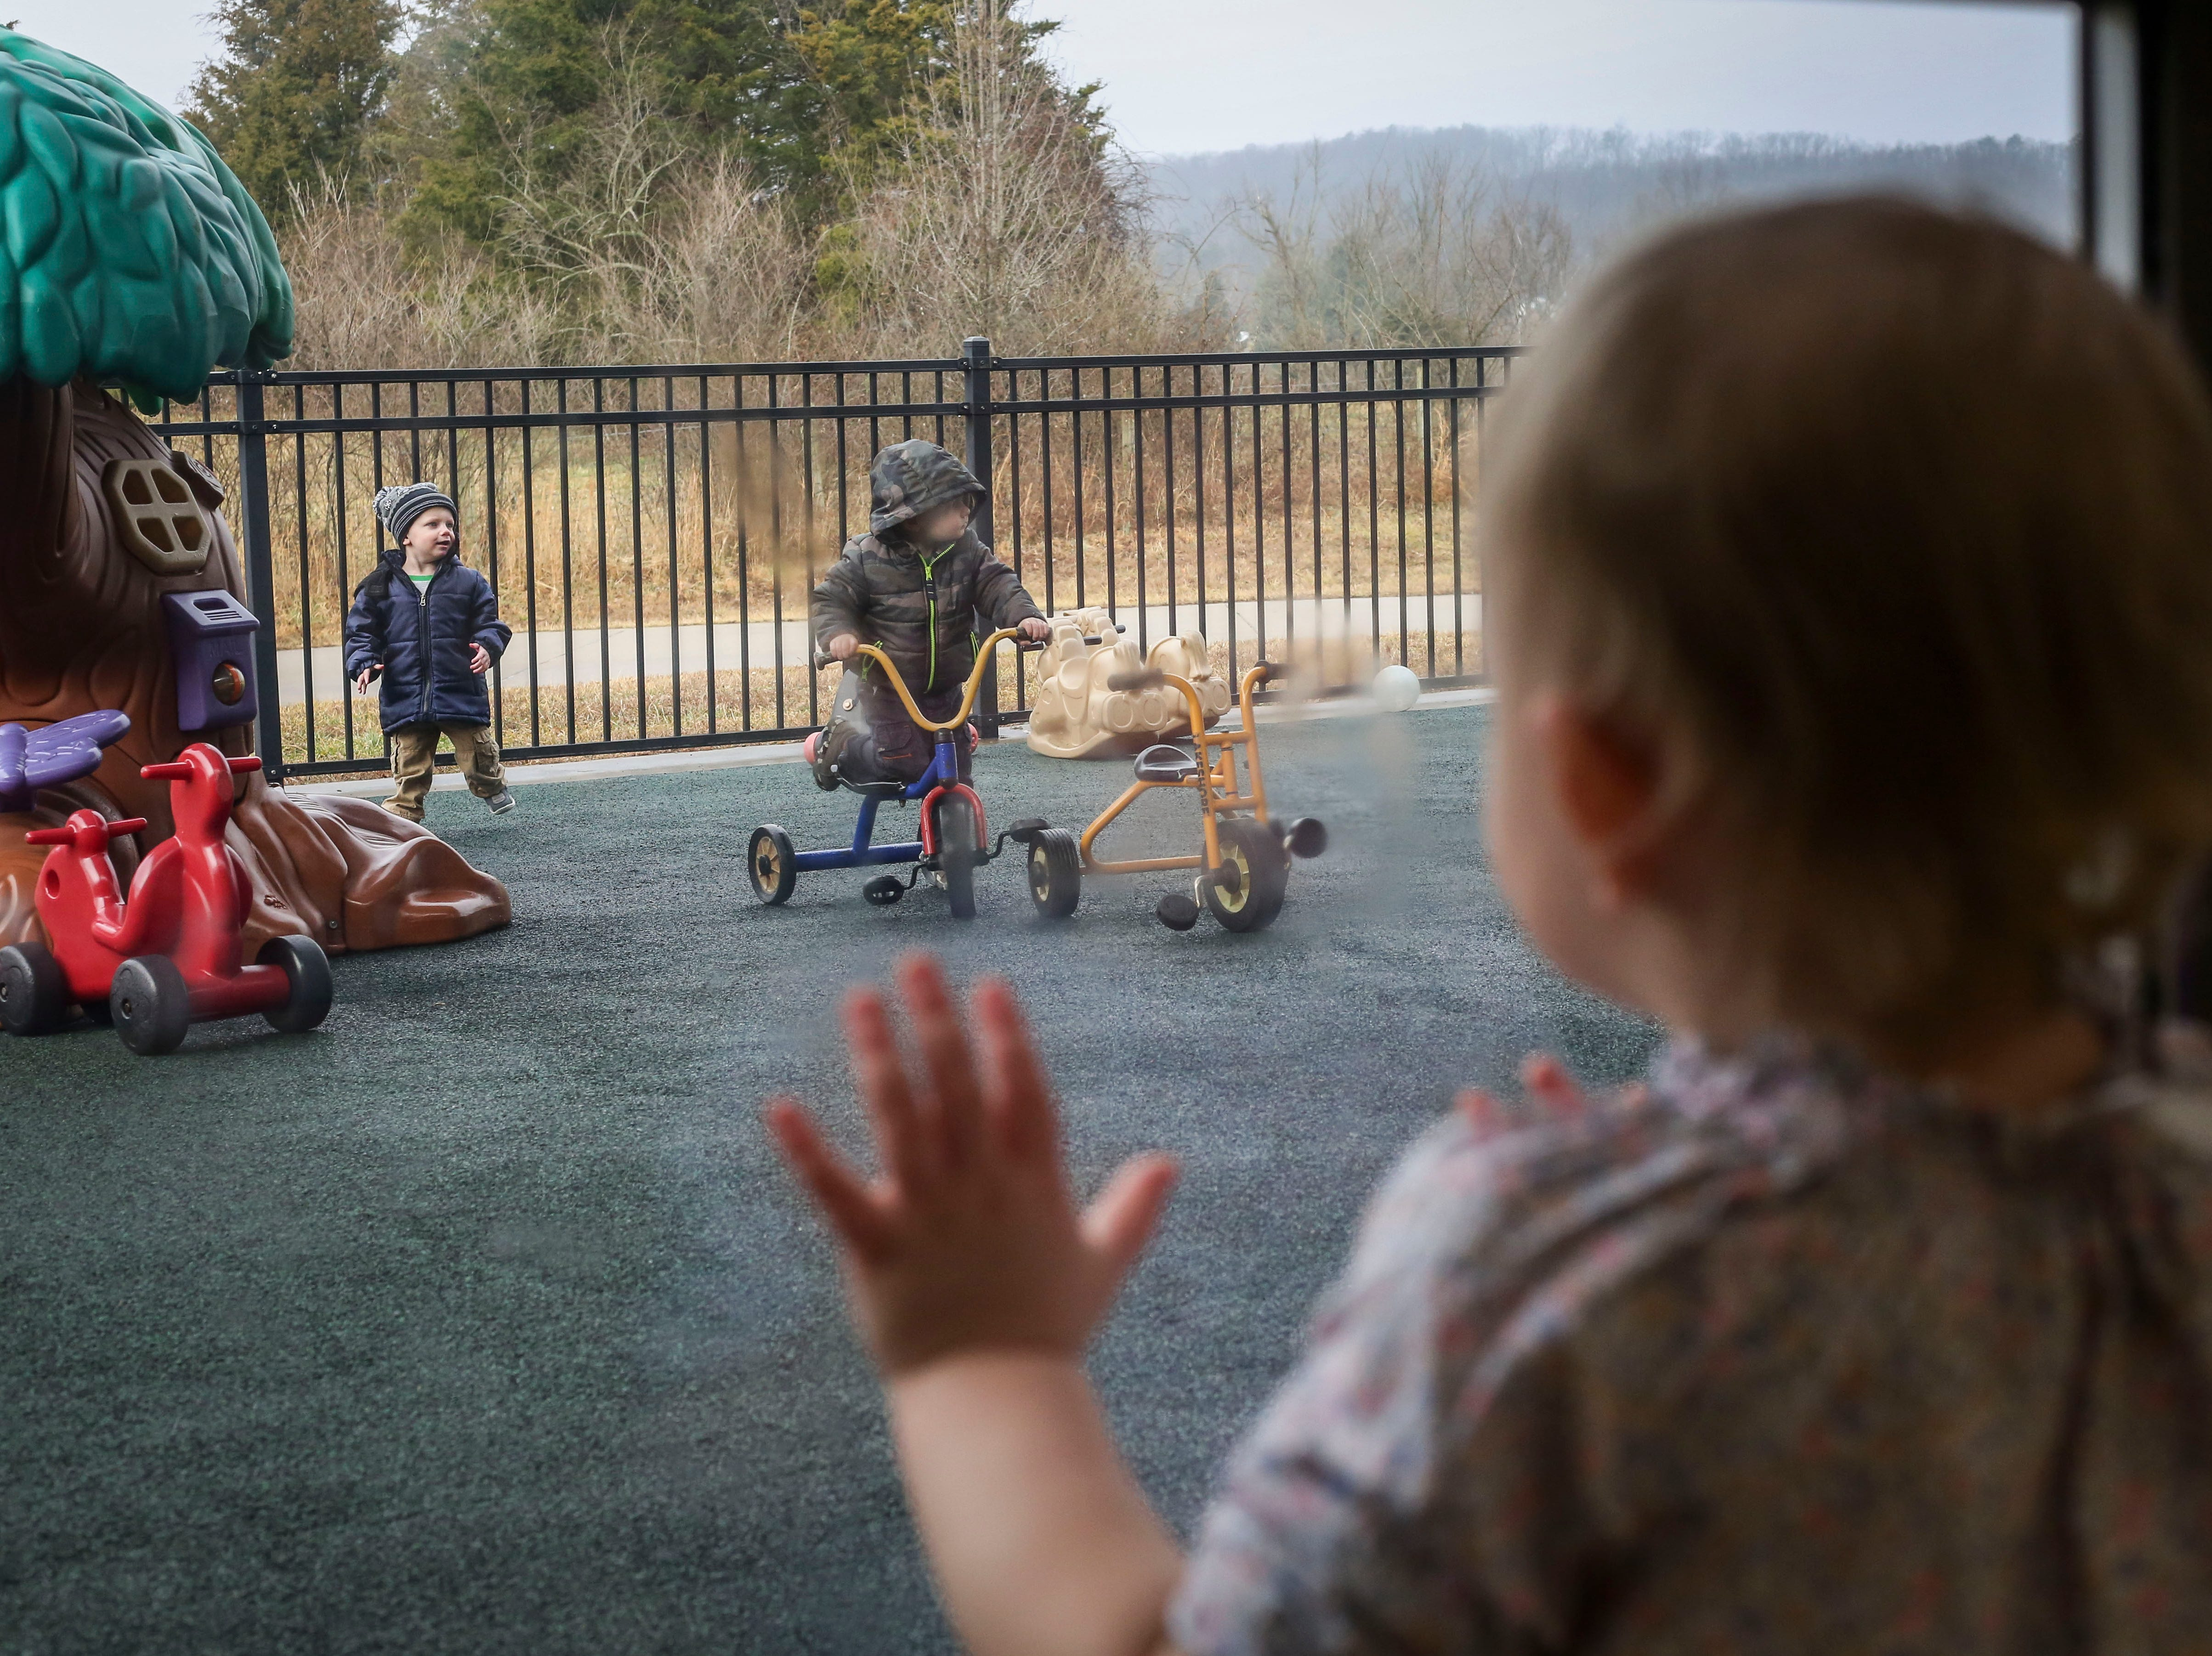 Rose Crutchfield looks through the glass door at another class playing outdoors during the Early Head Start program at Brooks Elementary School in Brooks, Ky. on Feb. 5, 2019.